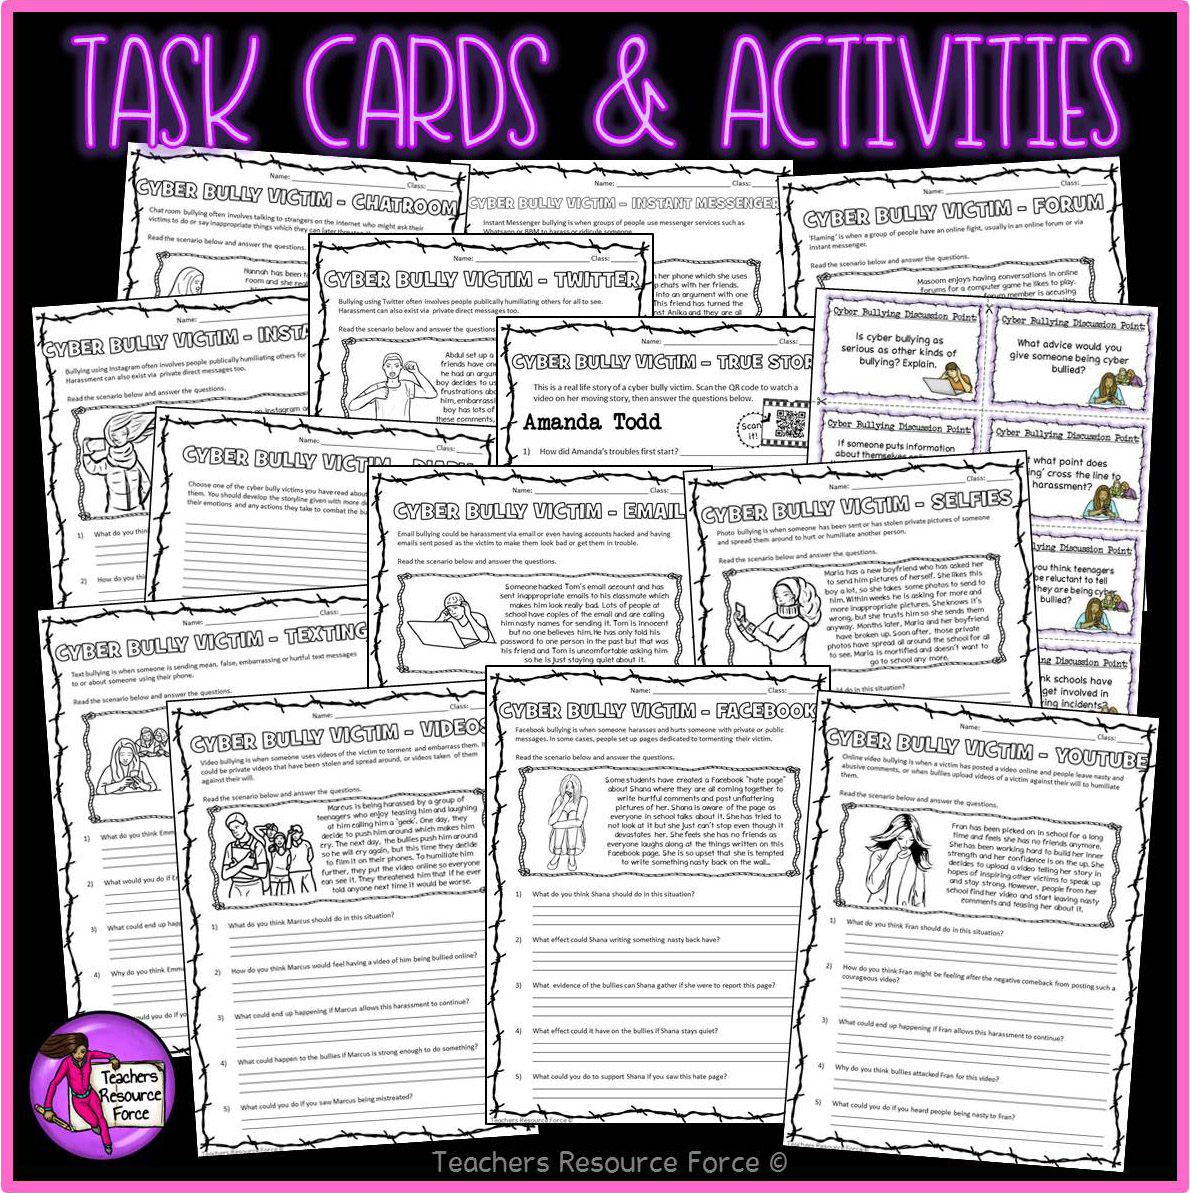 Cyber Bullying Awareness Activities Posters And Task